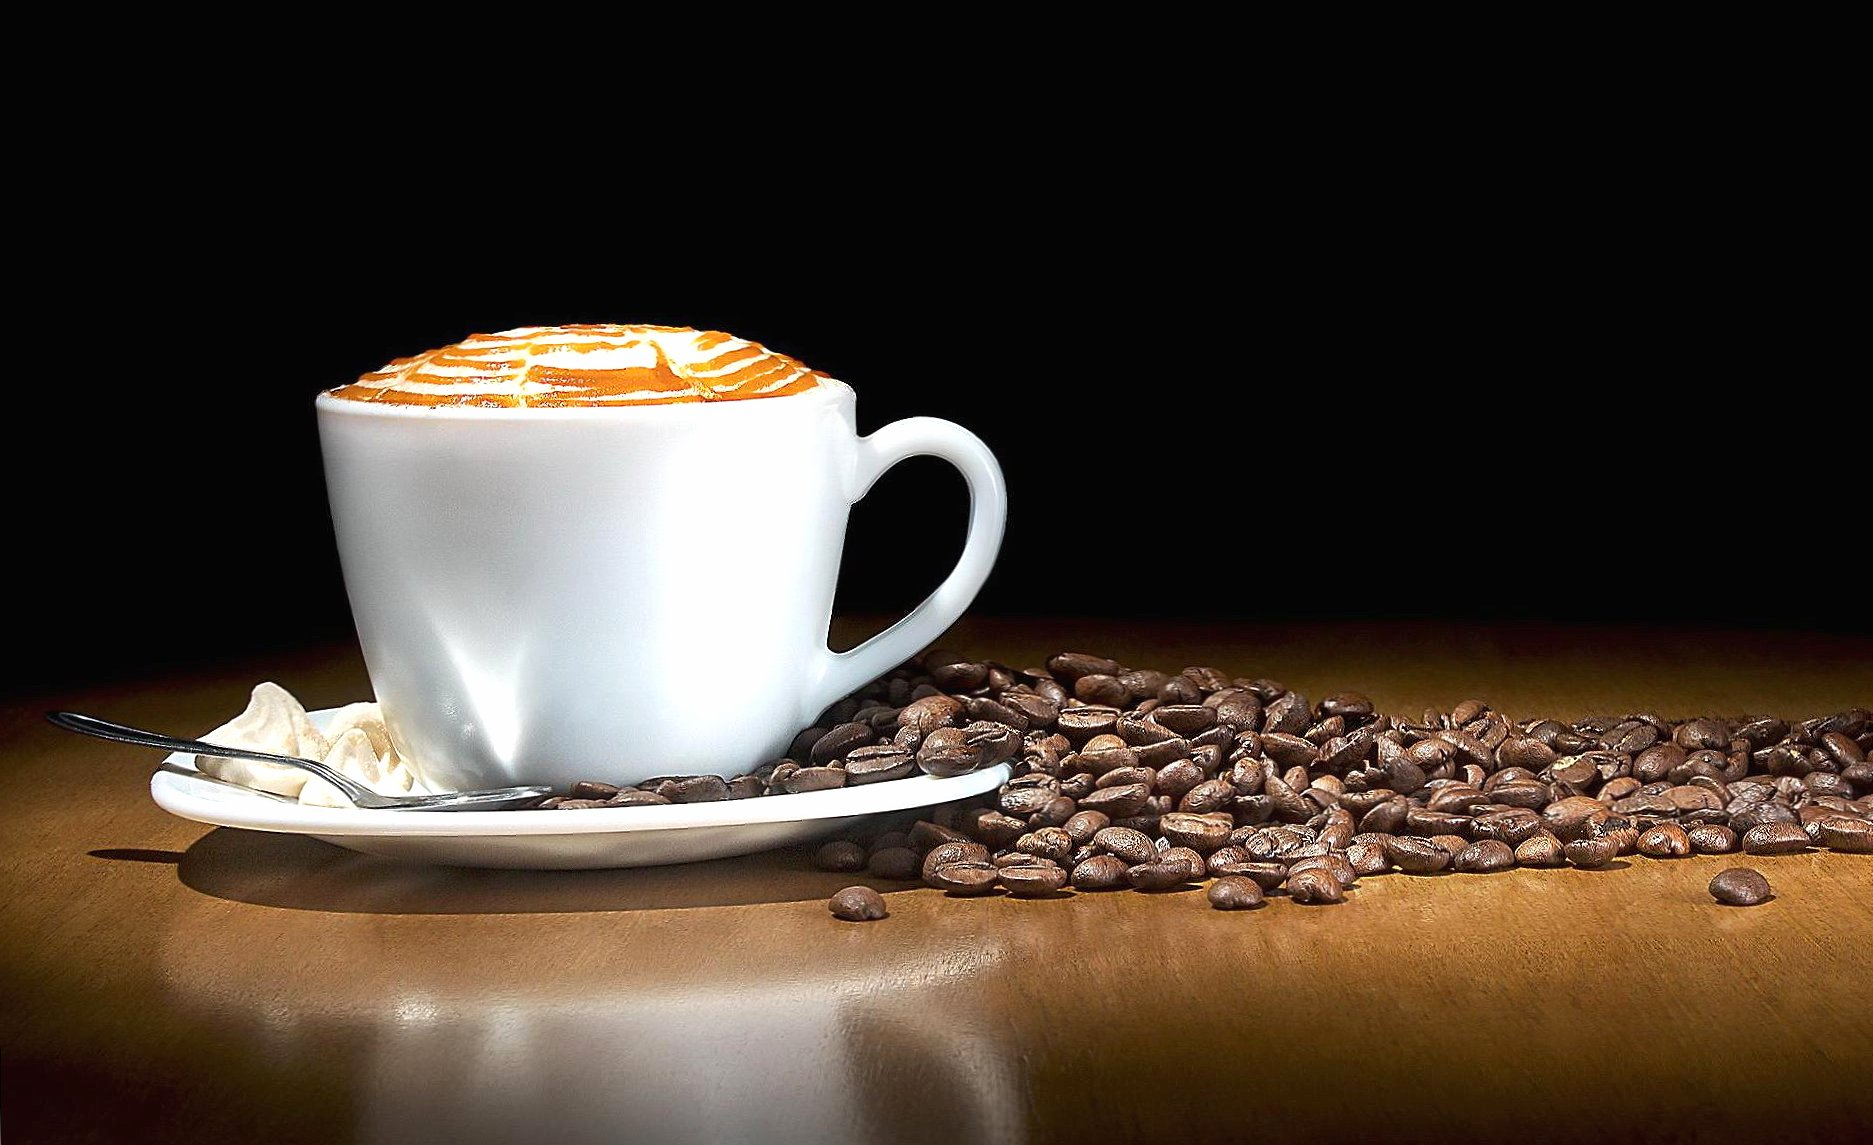 Amazing cup of coffee wallpapers HD quality